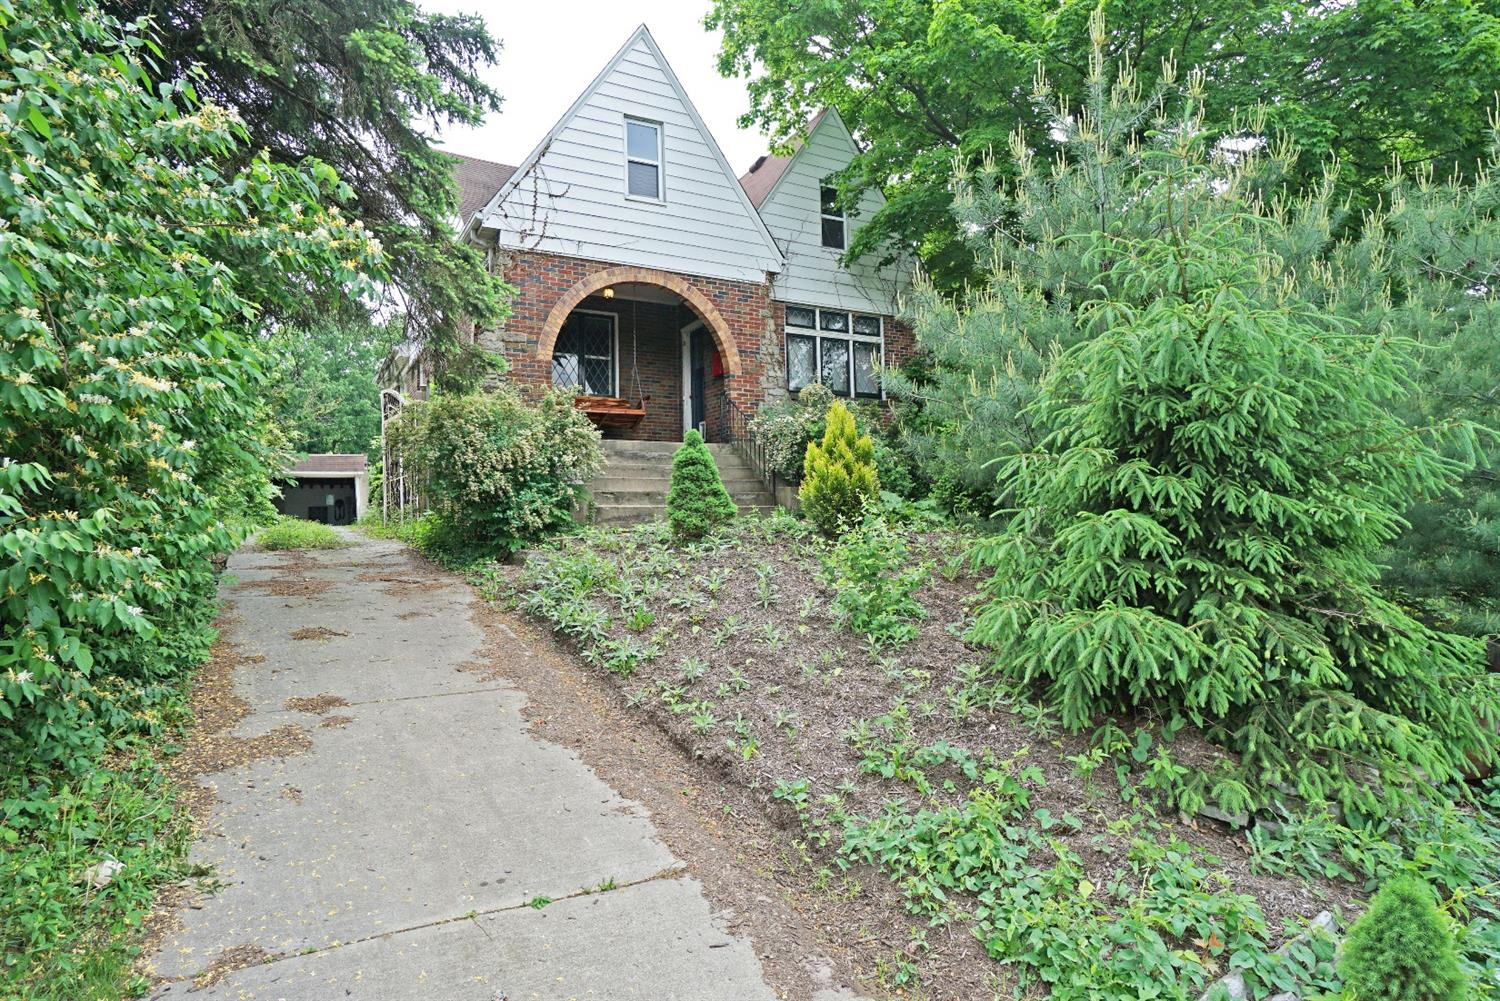 2927 Lehman Rd, Price Hill, OH 45204 Listing Details: MLS ... on